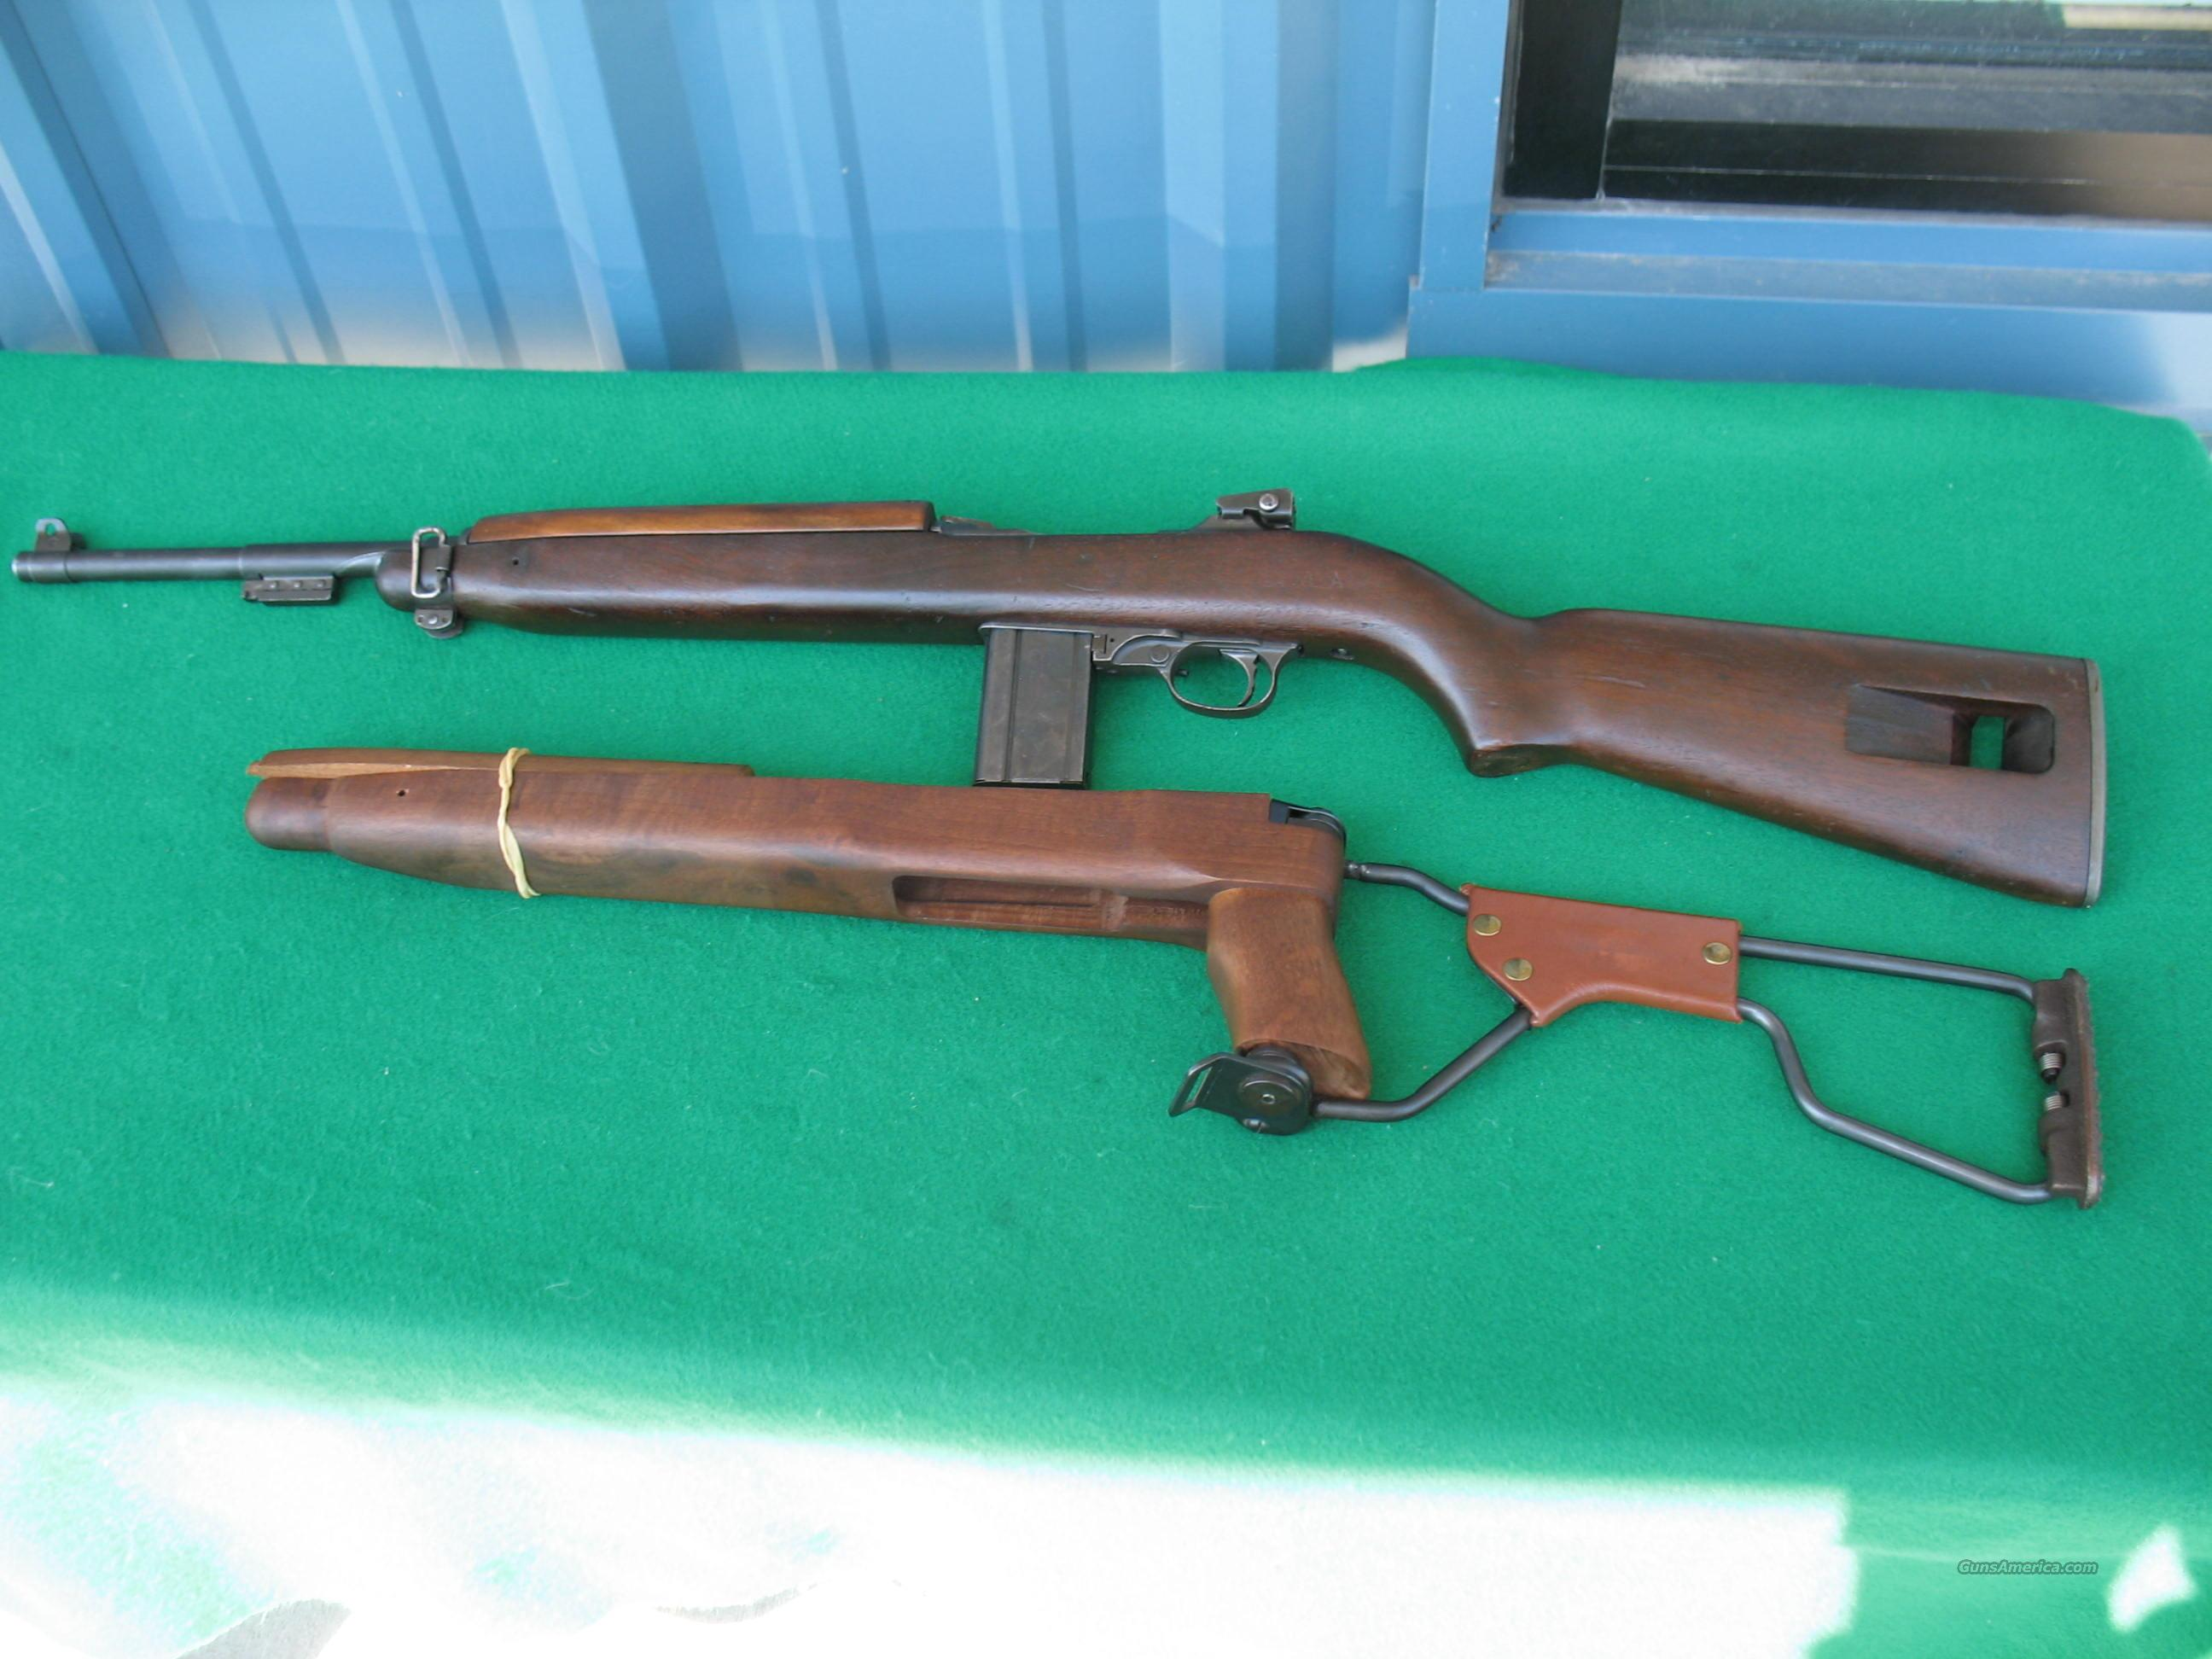 INDLAND M1 CARBINE 30 M1 CAL. W/ FOLDING STOCK  Guns > Rifles > Military Misc. Rifles US > M1 Carbine